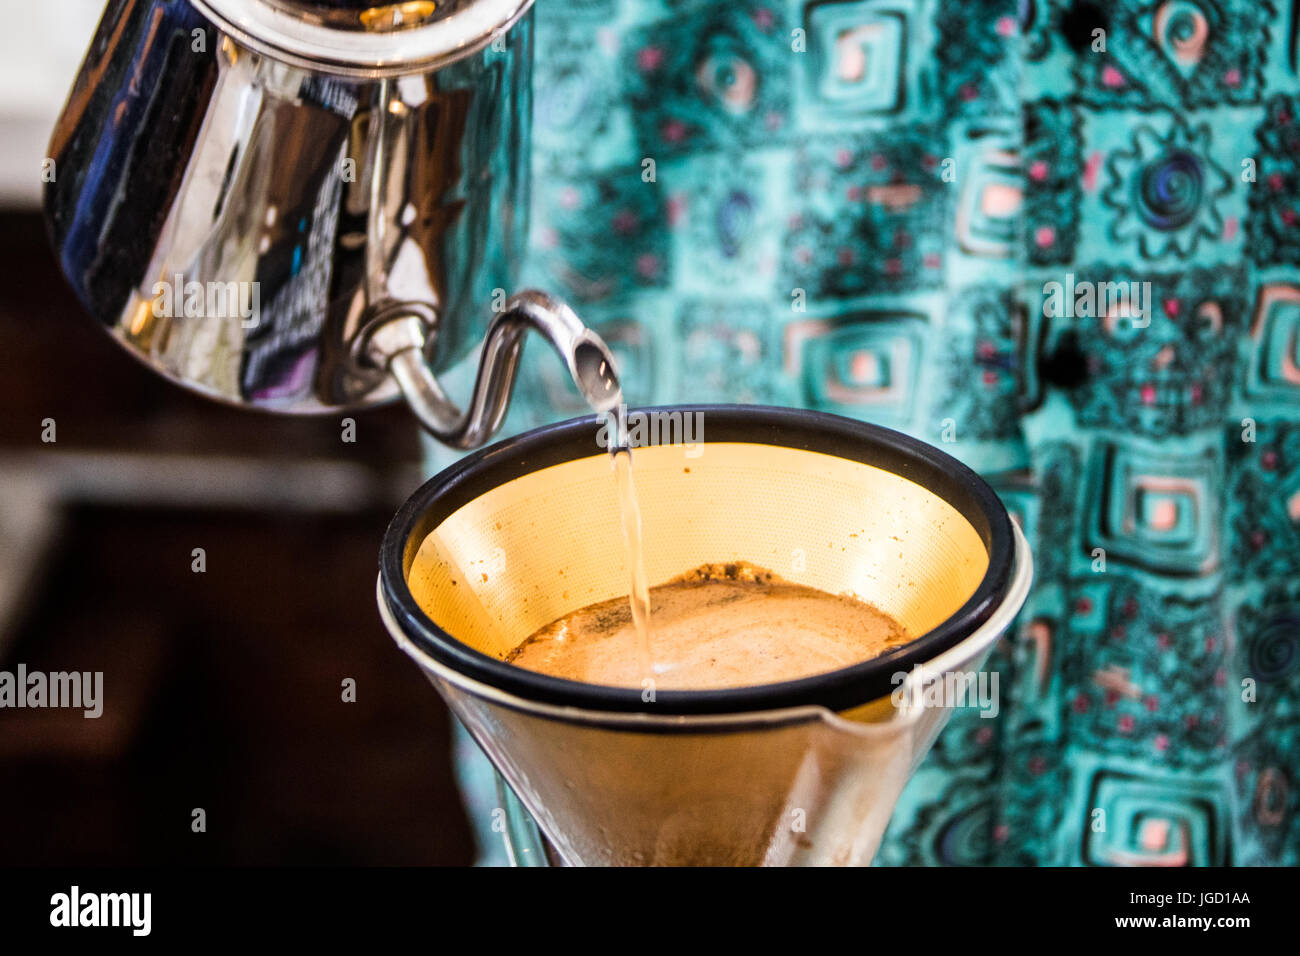 Pour over into a gold filter, Revolver Cafe, Cambie Street, Vancouver, Canada - Stock Image